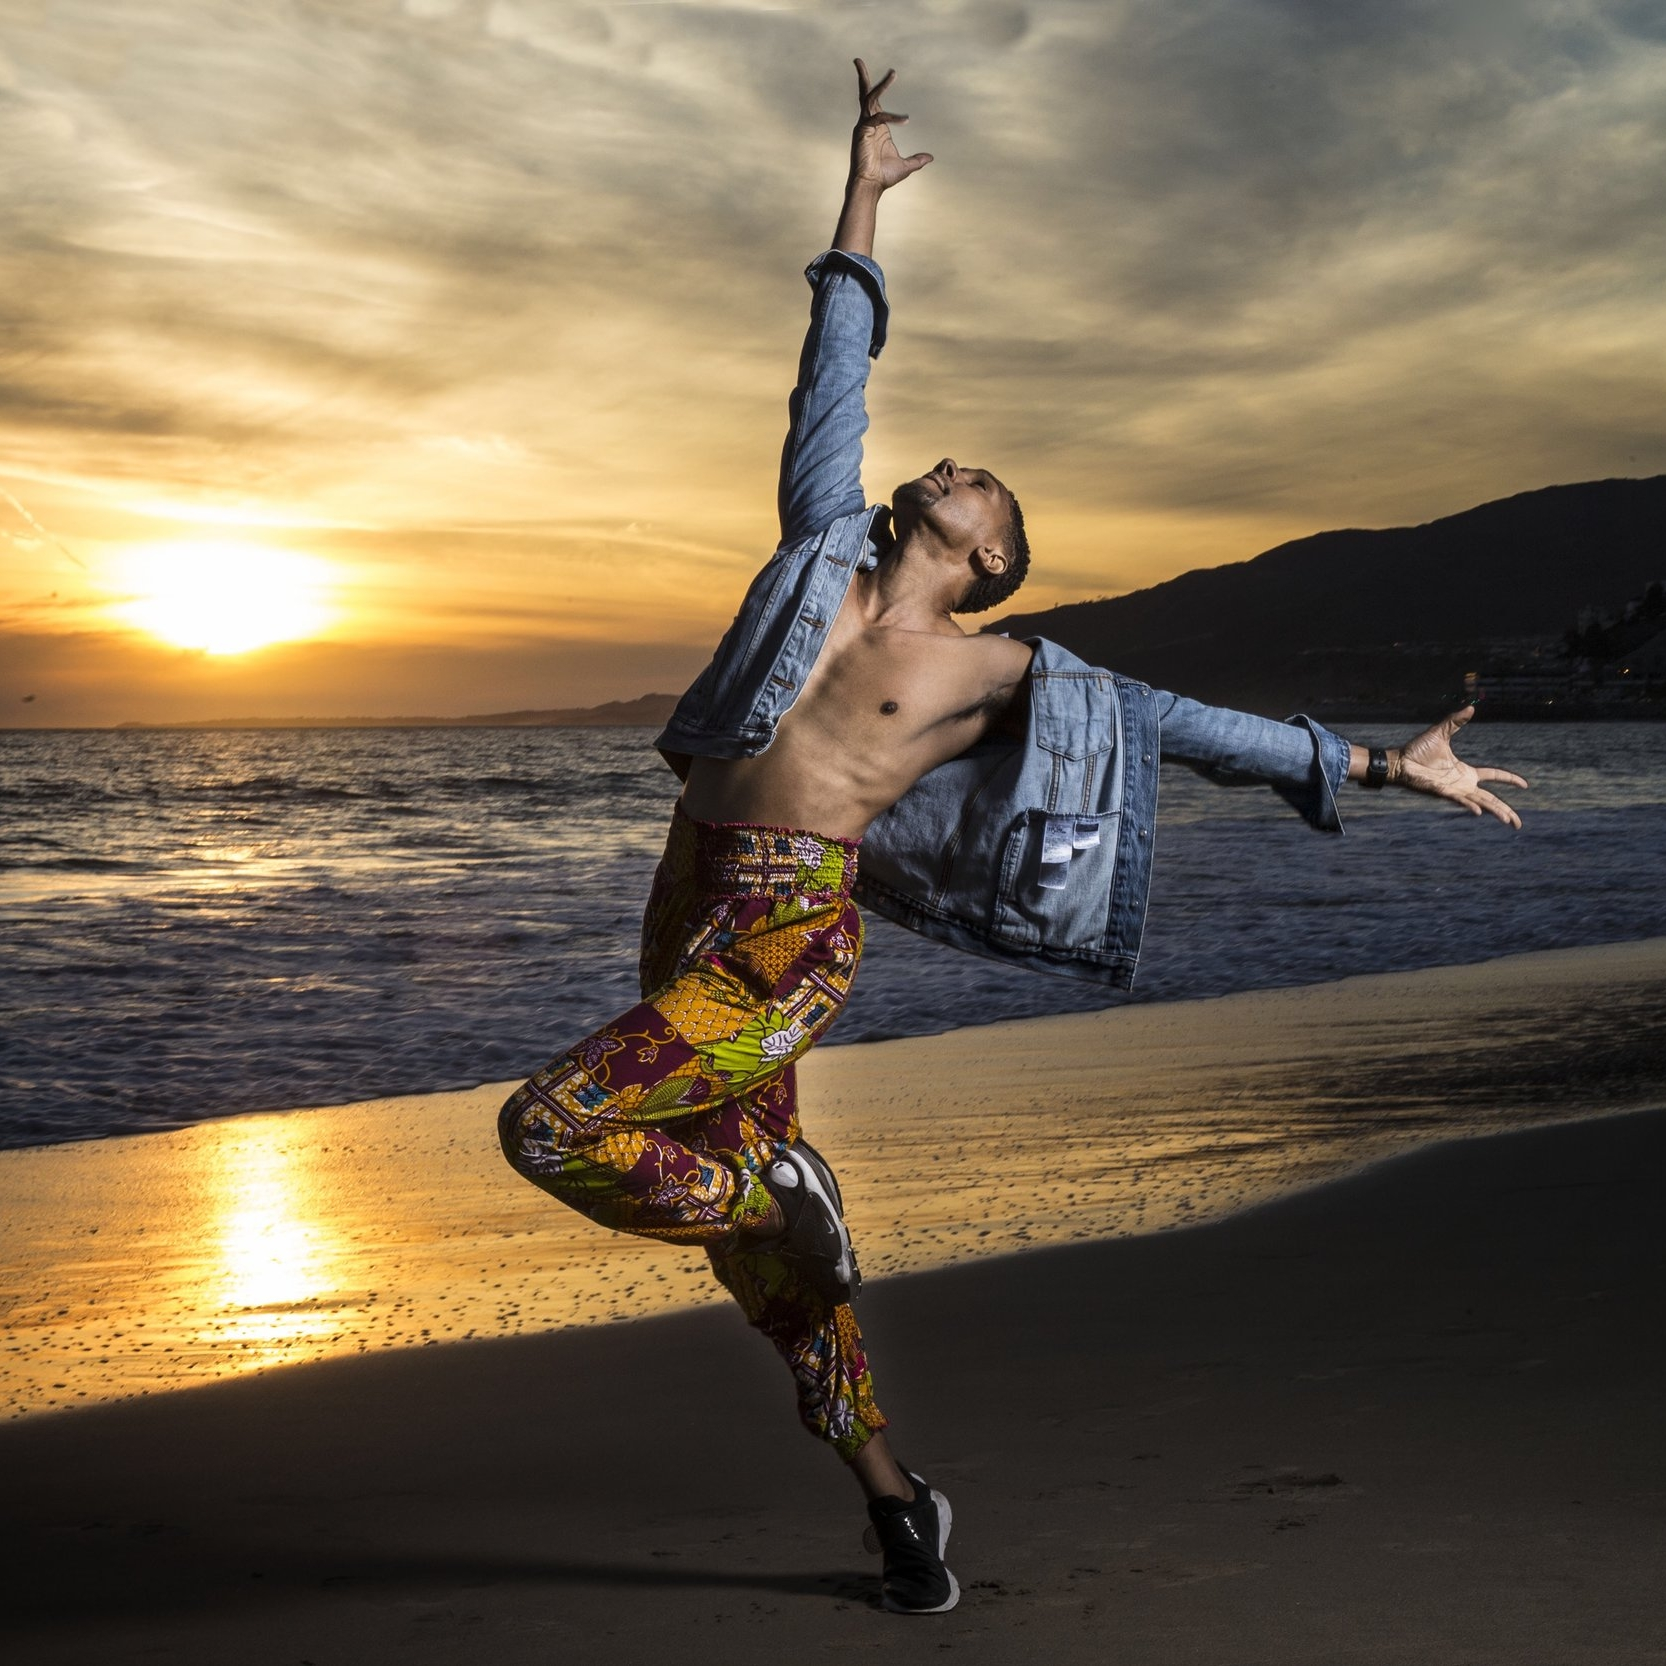 Juel D Lane    Ep. #112    Anxiety . Finding your  artistic voice .  Stripping labels  and connecting with humanity. Juel shares his story and how working with  Alvin Ailey II  and  Atlana Ballet  have enriched his artistry and teaching.